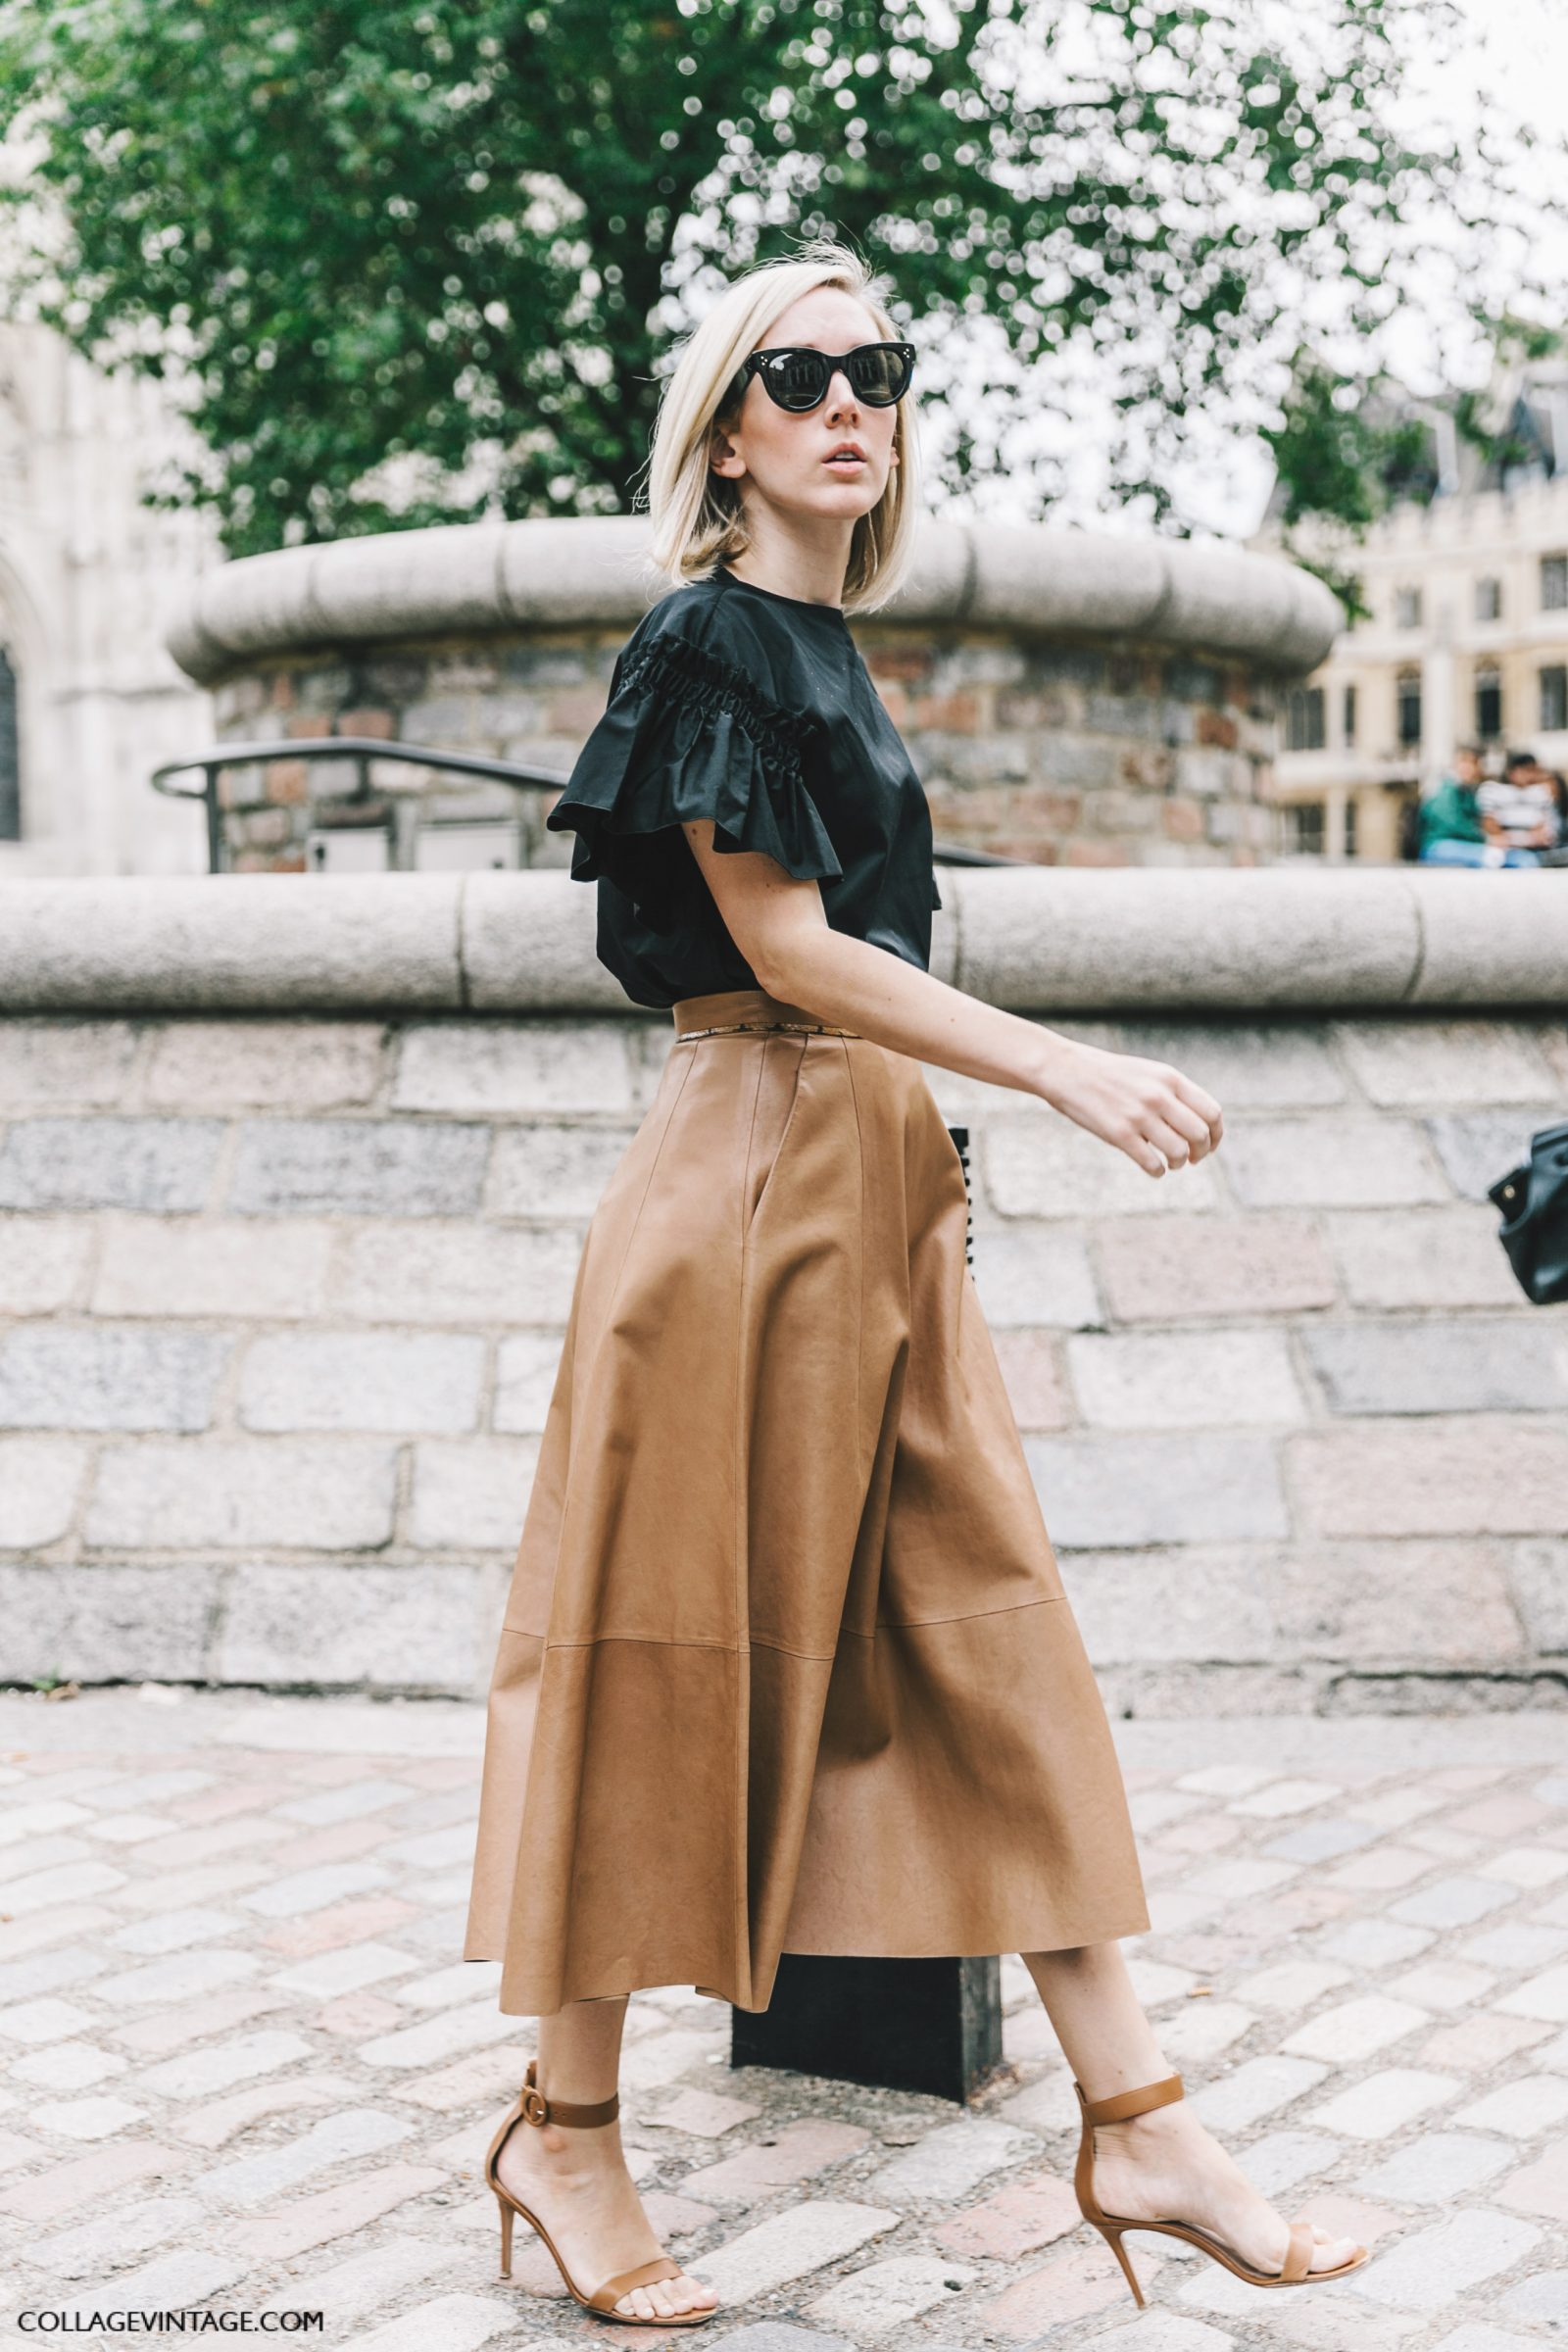 lfw-london_fashion_week_ss17-street_style-outfits-collage_vintage-vintage-topshop_unique-anya-mulberry-preen-54